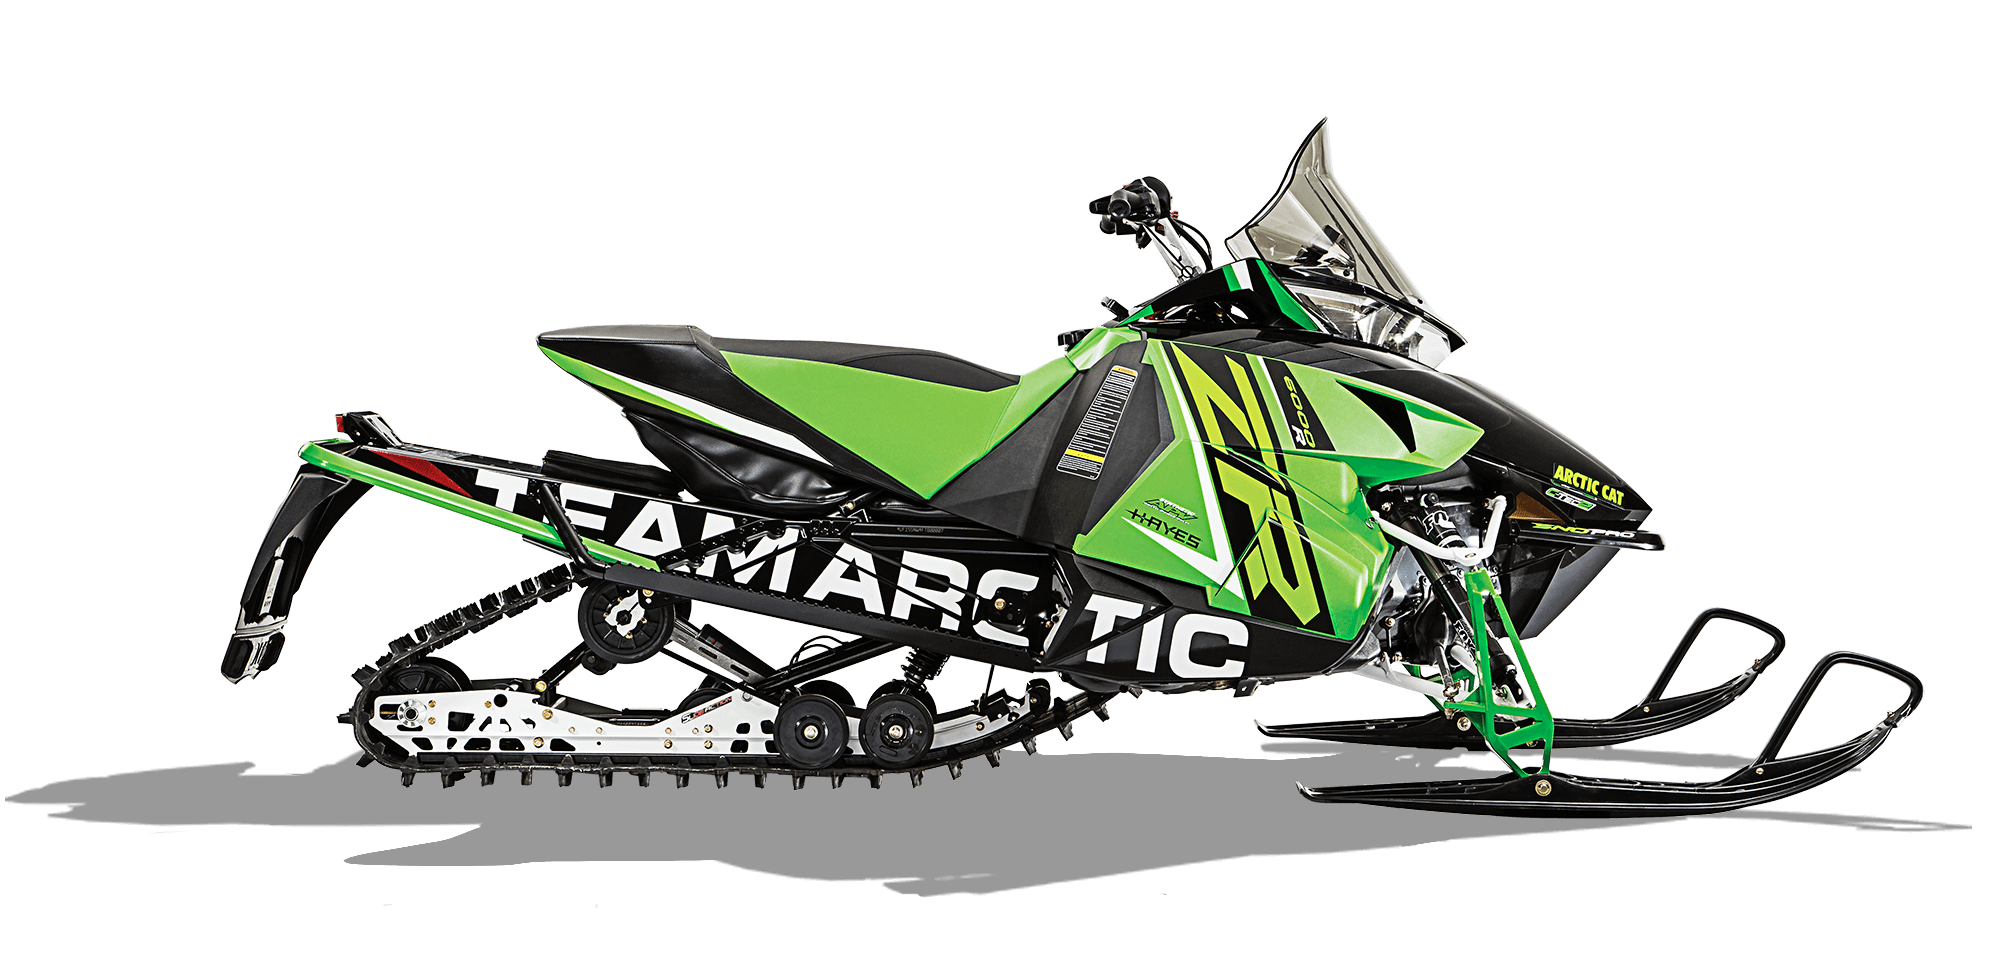 Artic cat snowmobile clipart black and white image freeuse library Models Archive | Arctic Cat image freeuse library